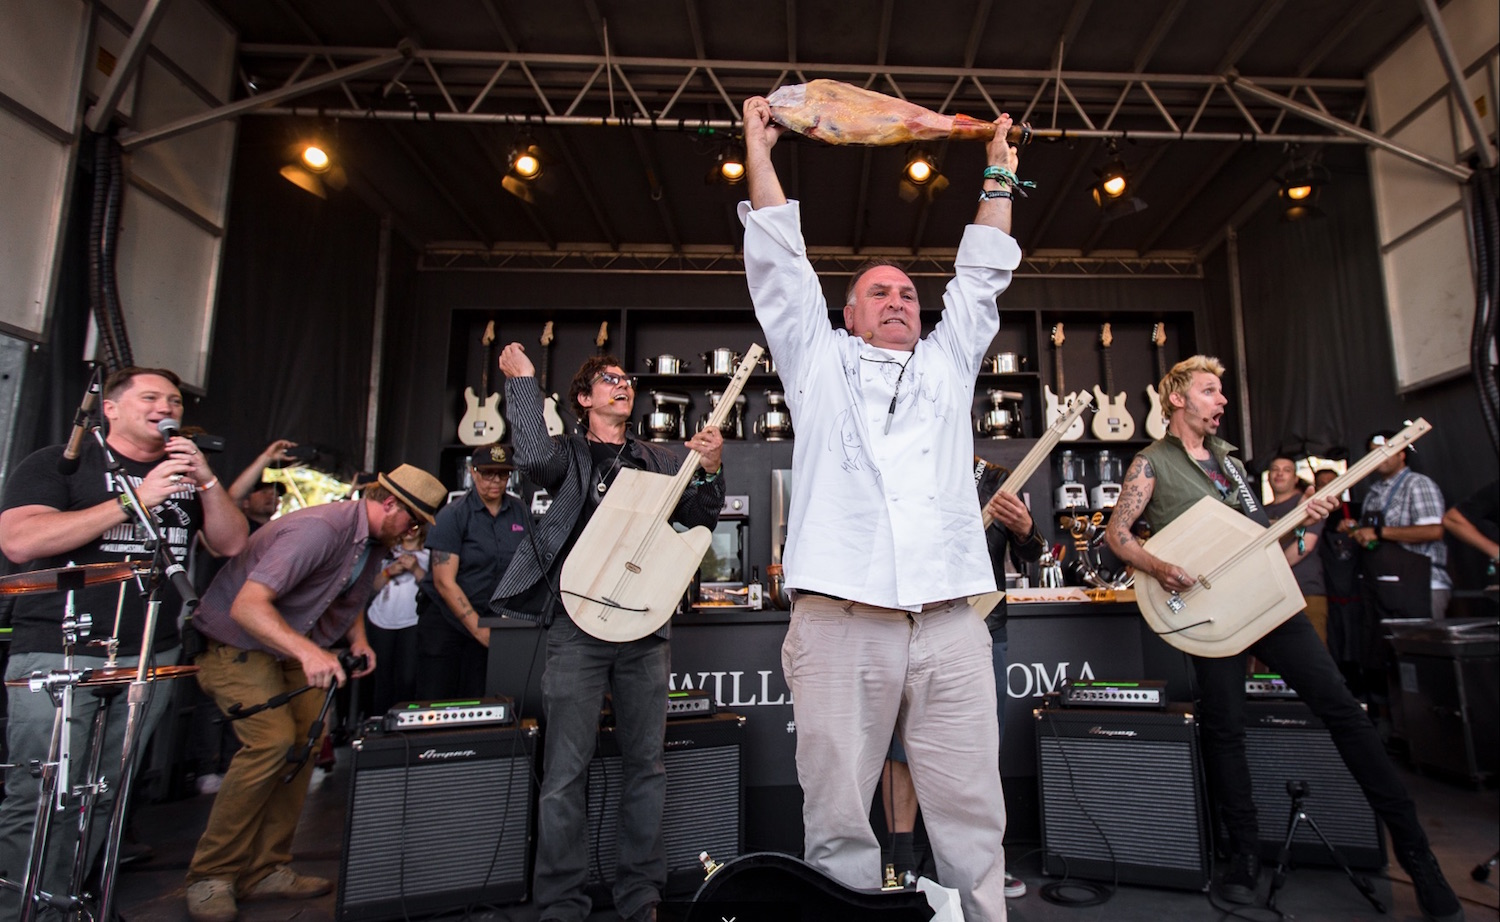 Chef Jose Andres at the 2017 Williams Sonoma Culinary Stage